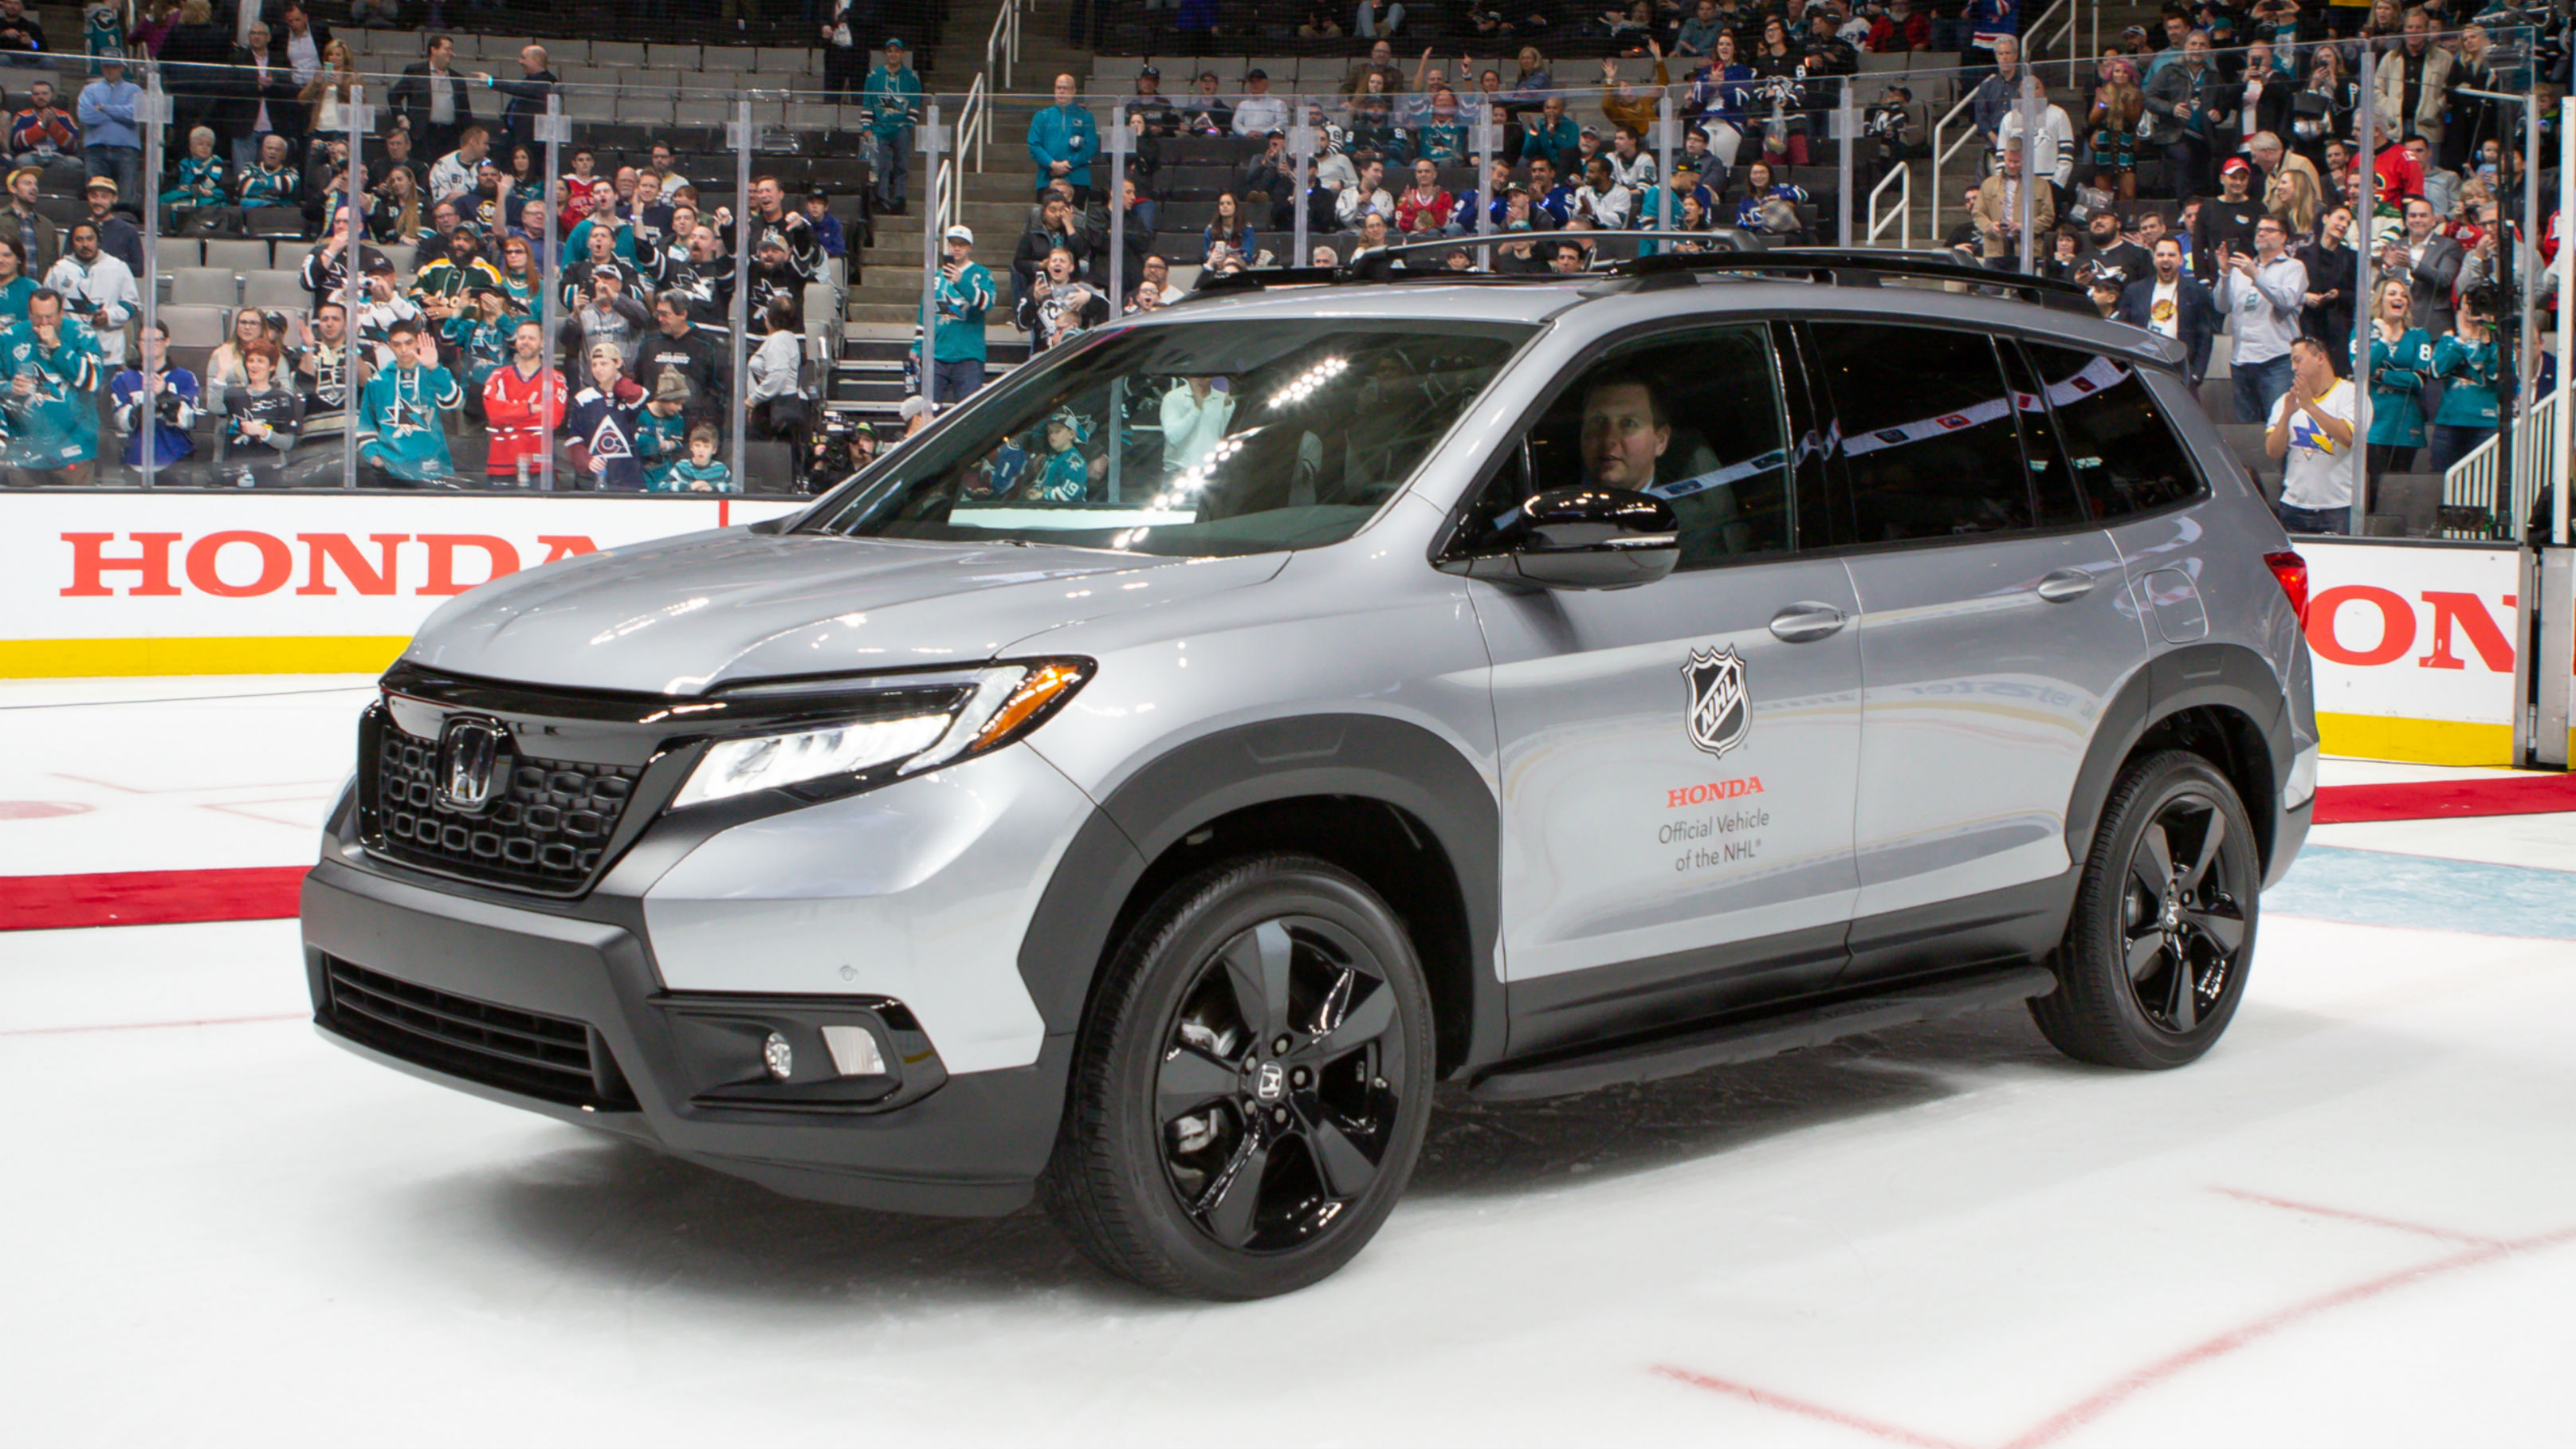 Honda and the National Hockey League